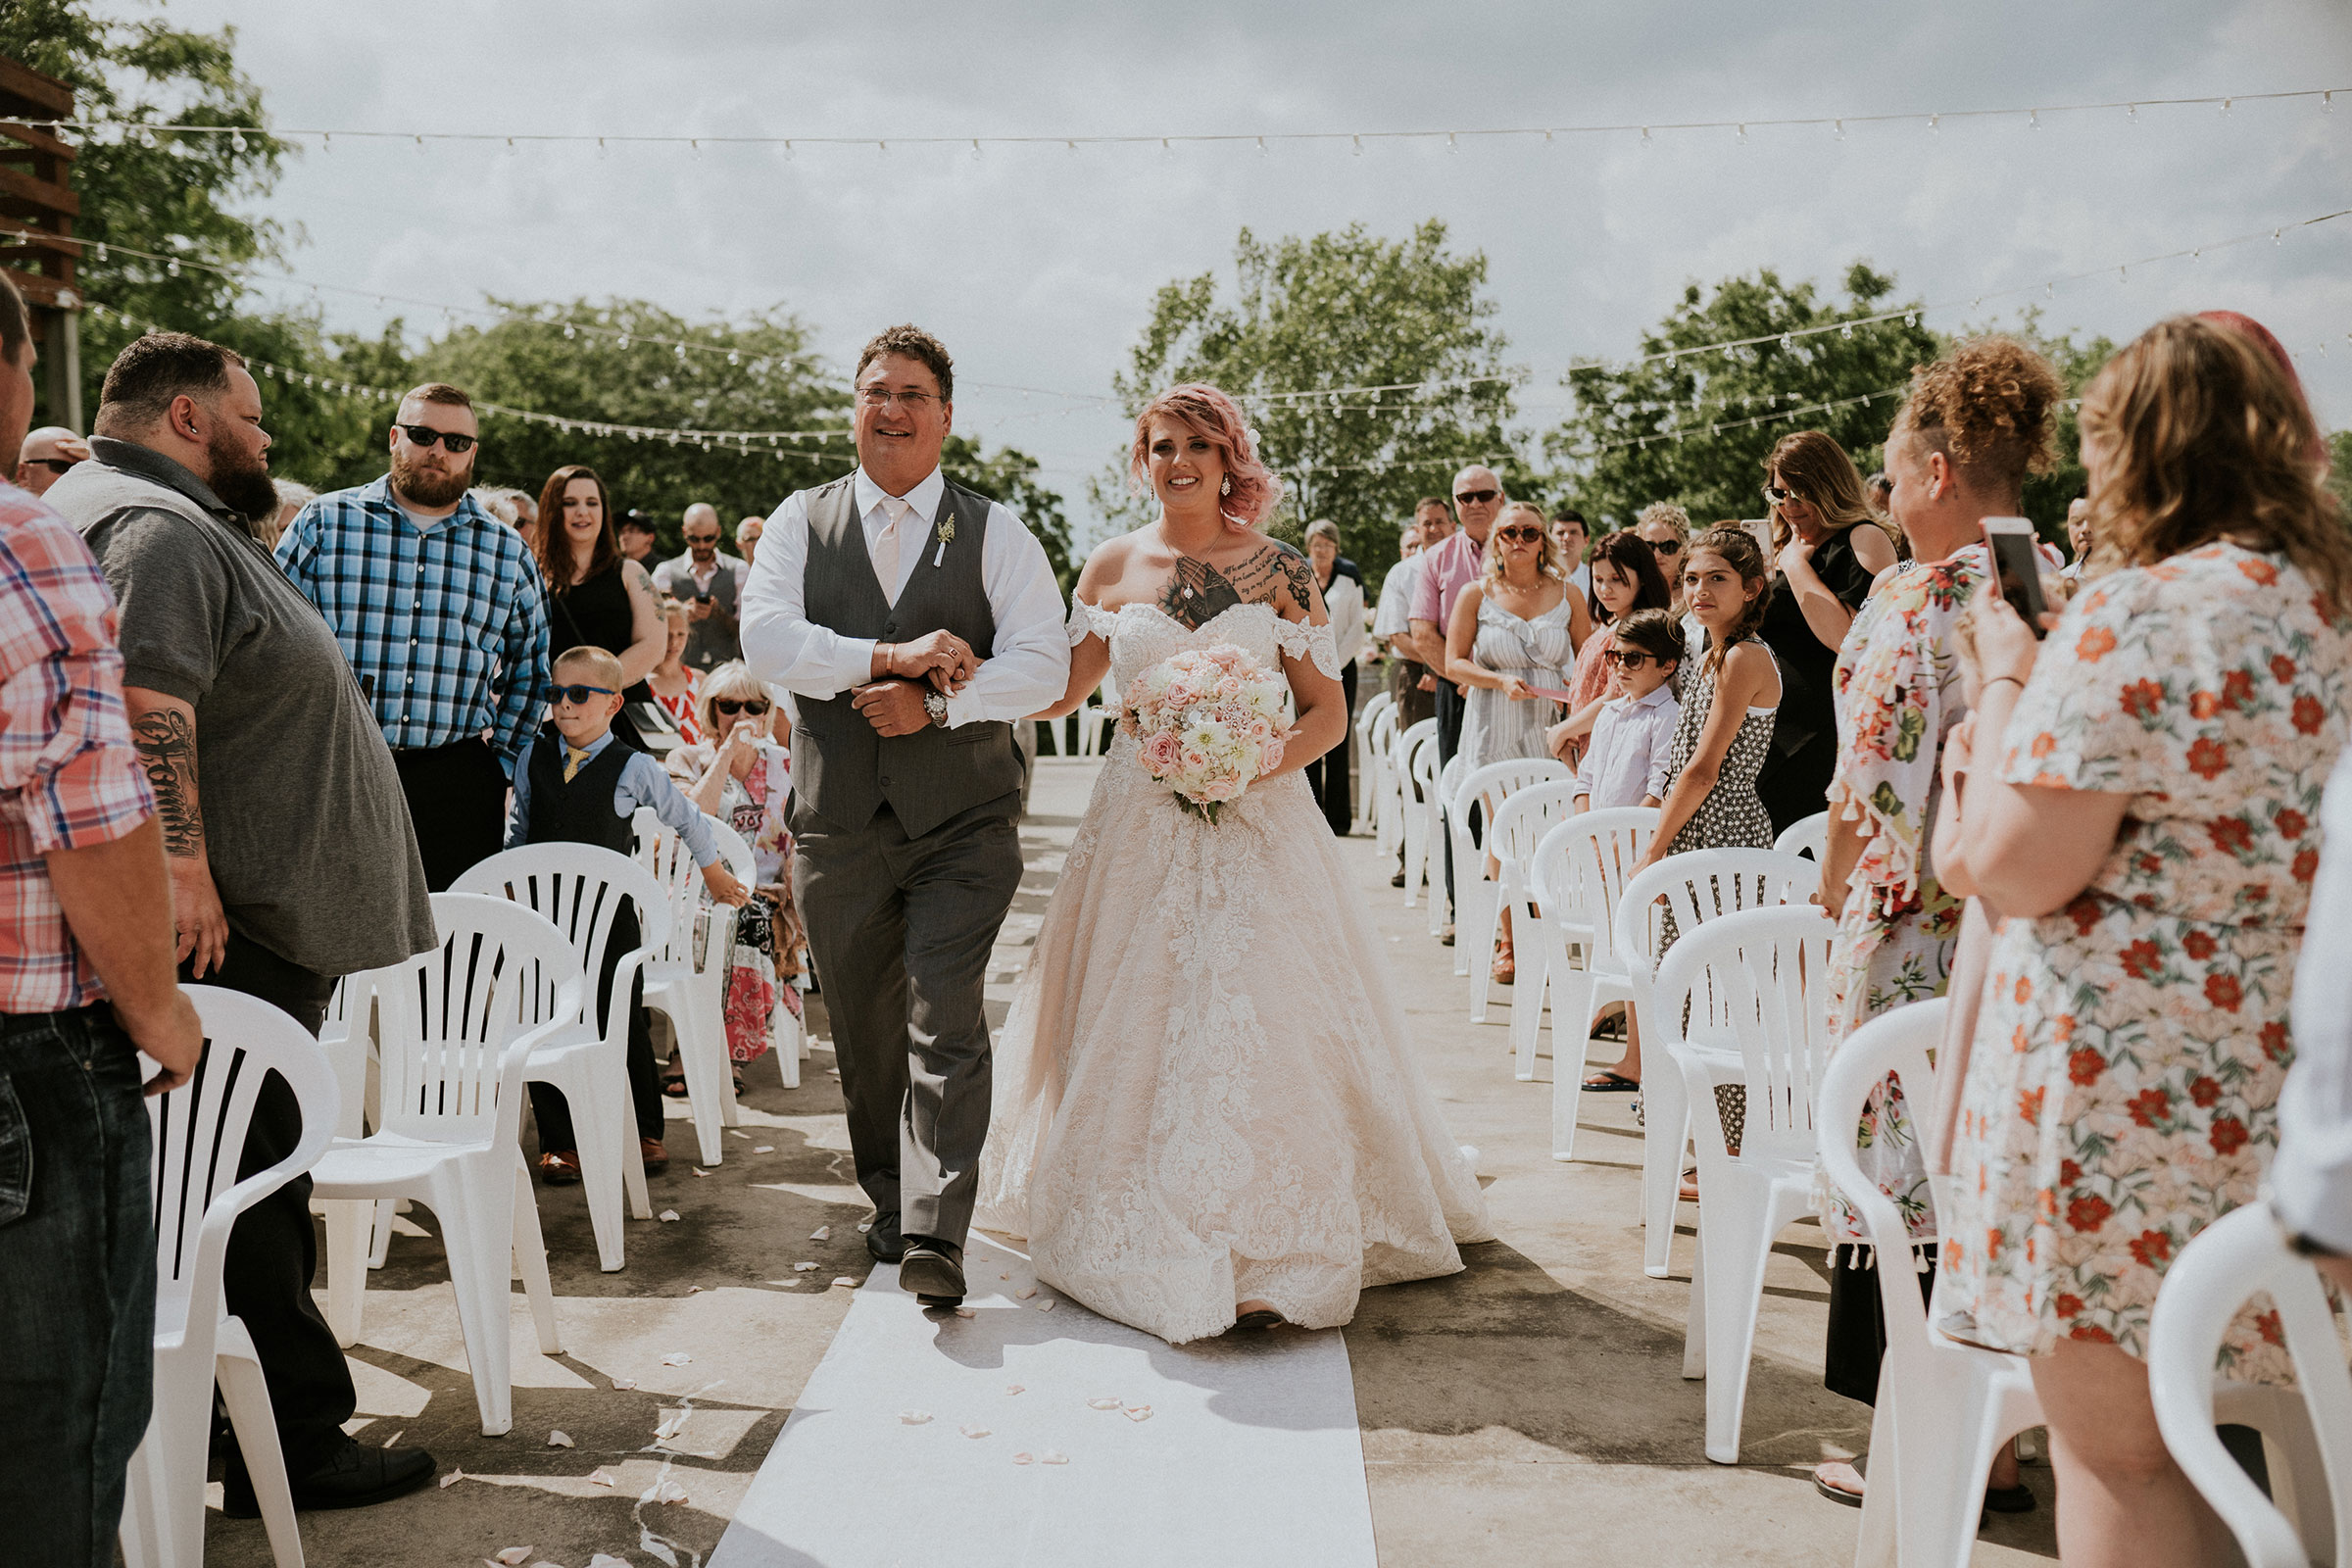 bride-walking-down-aisle-with-father-wedding-summerset-winery-indianola-iowa-raelyn-ramey-photography.jpg